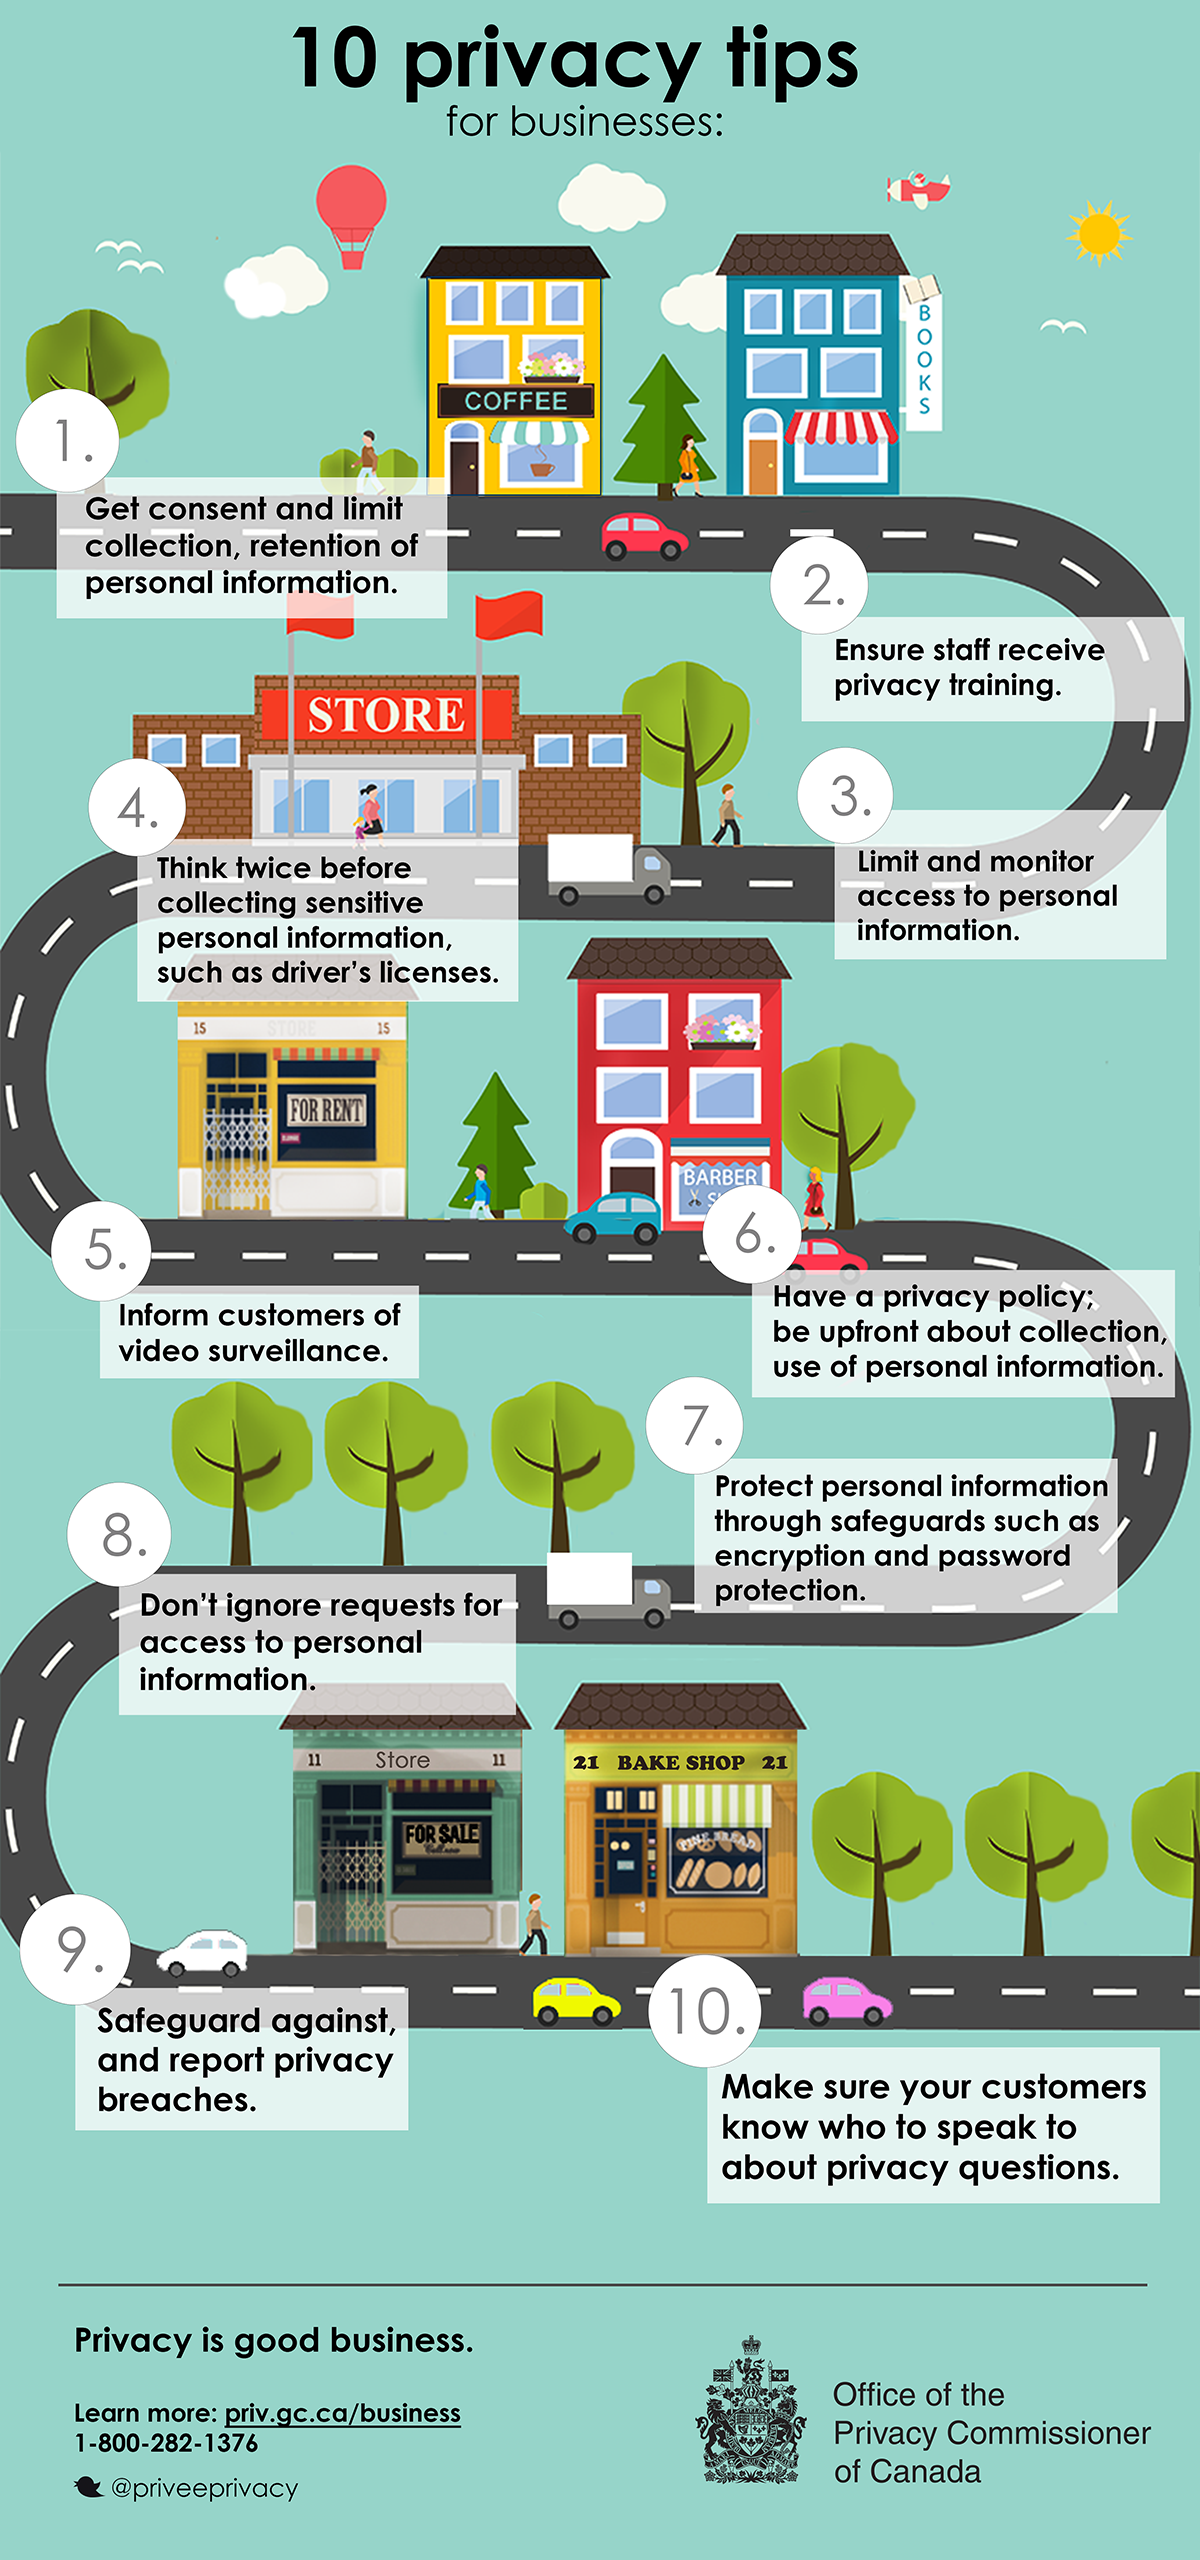 Infographic: 10 privacy tips for businesses